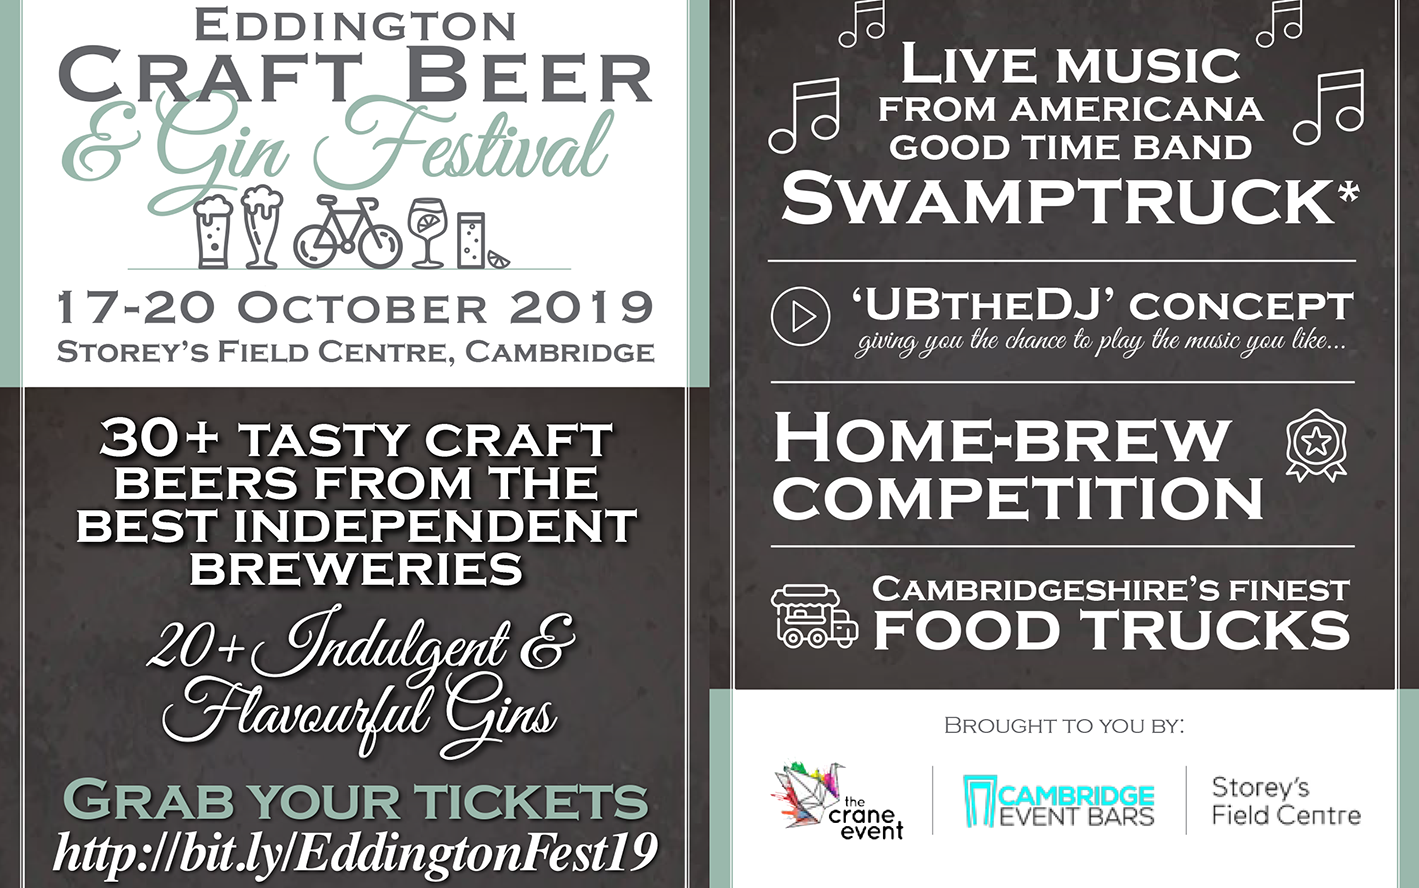 Eddington Craft Beer & Gin Festival